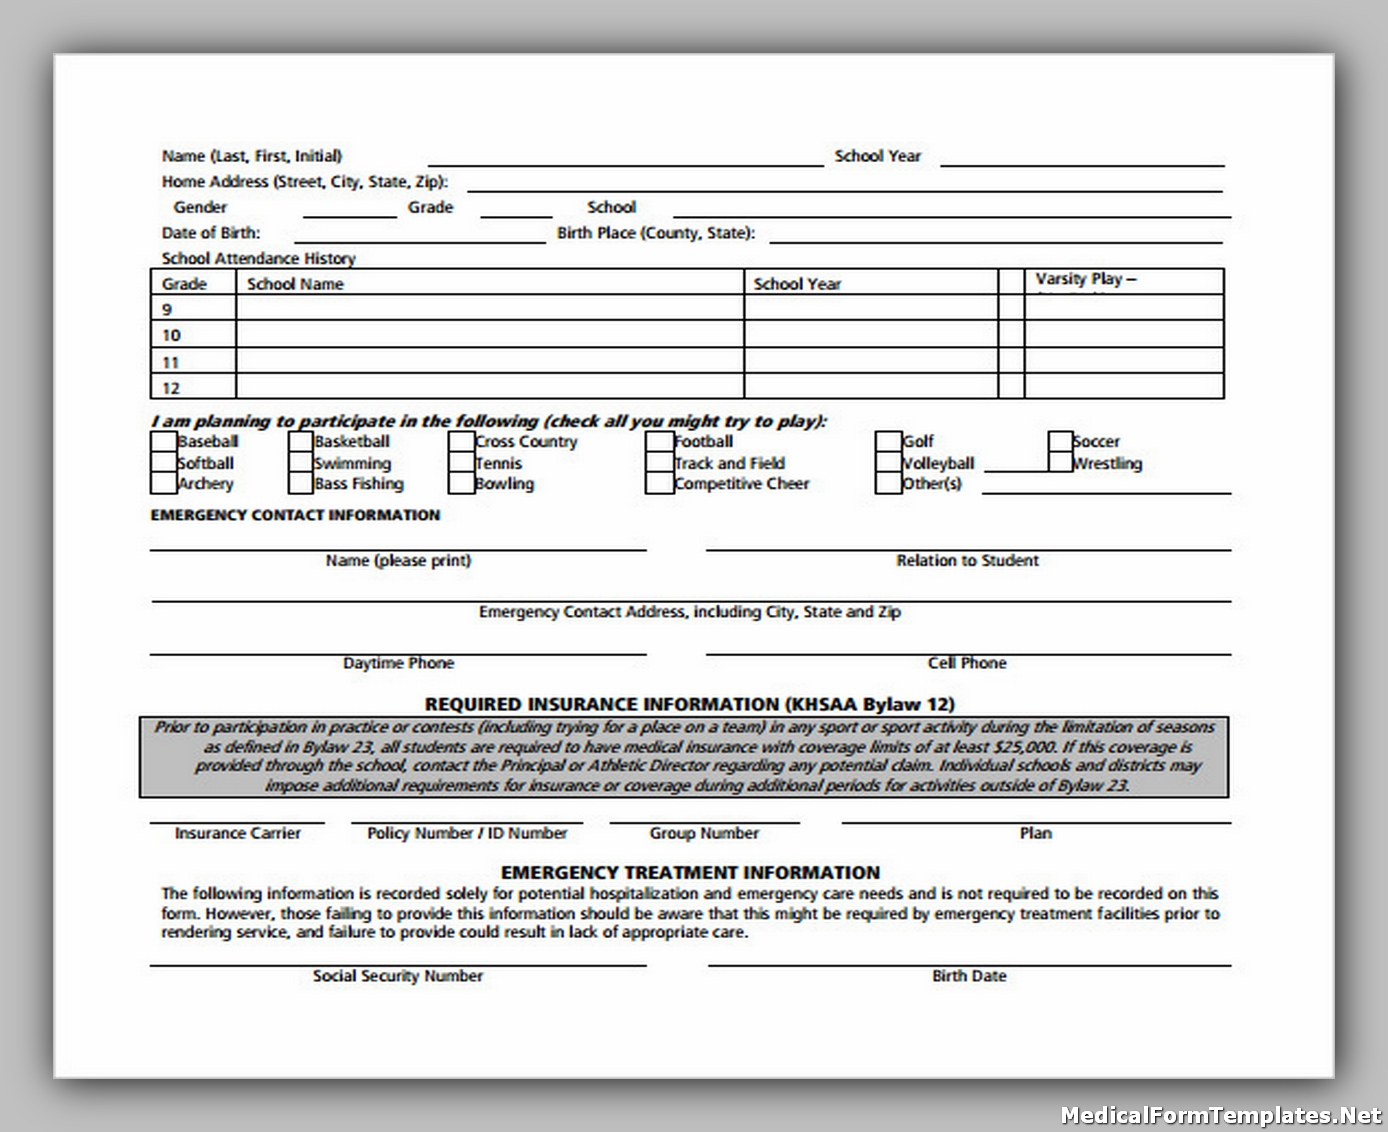 Student Medical Consent and Release Form